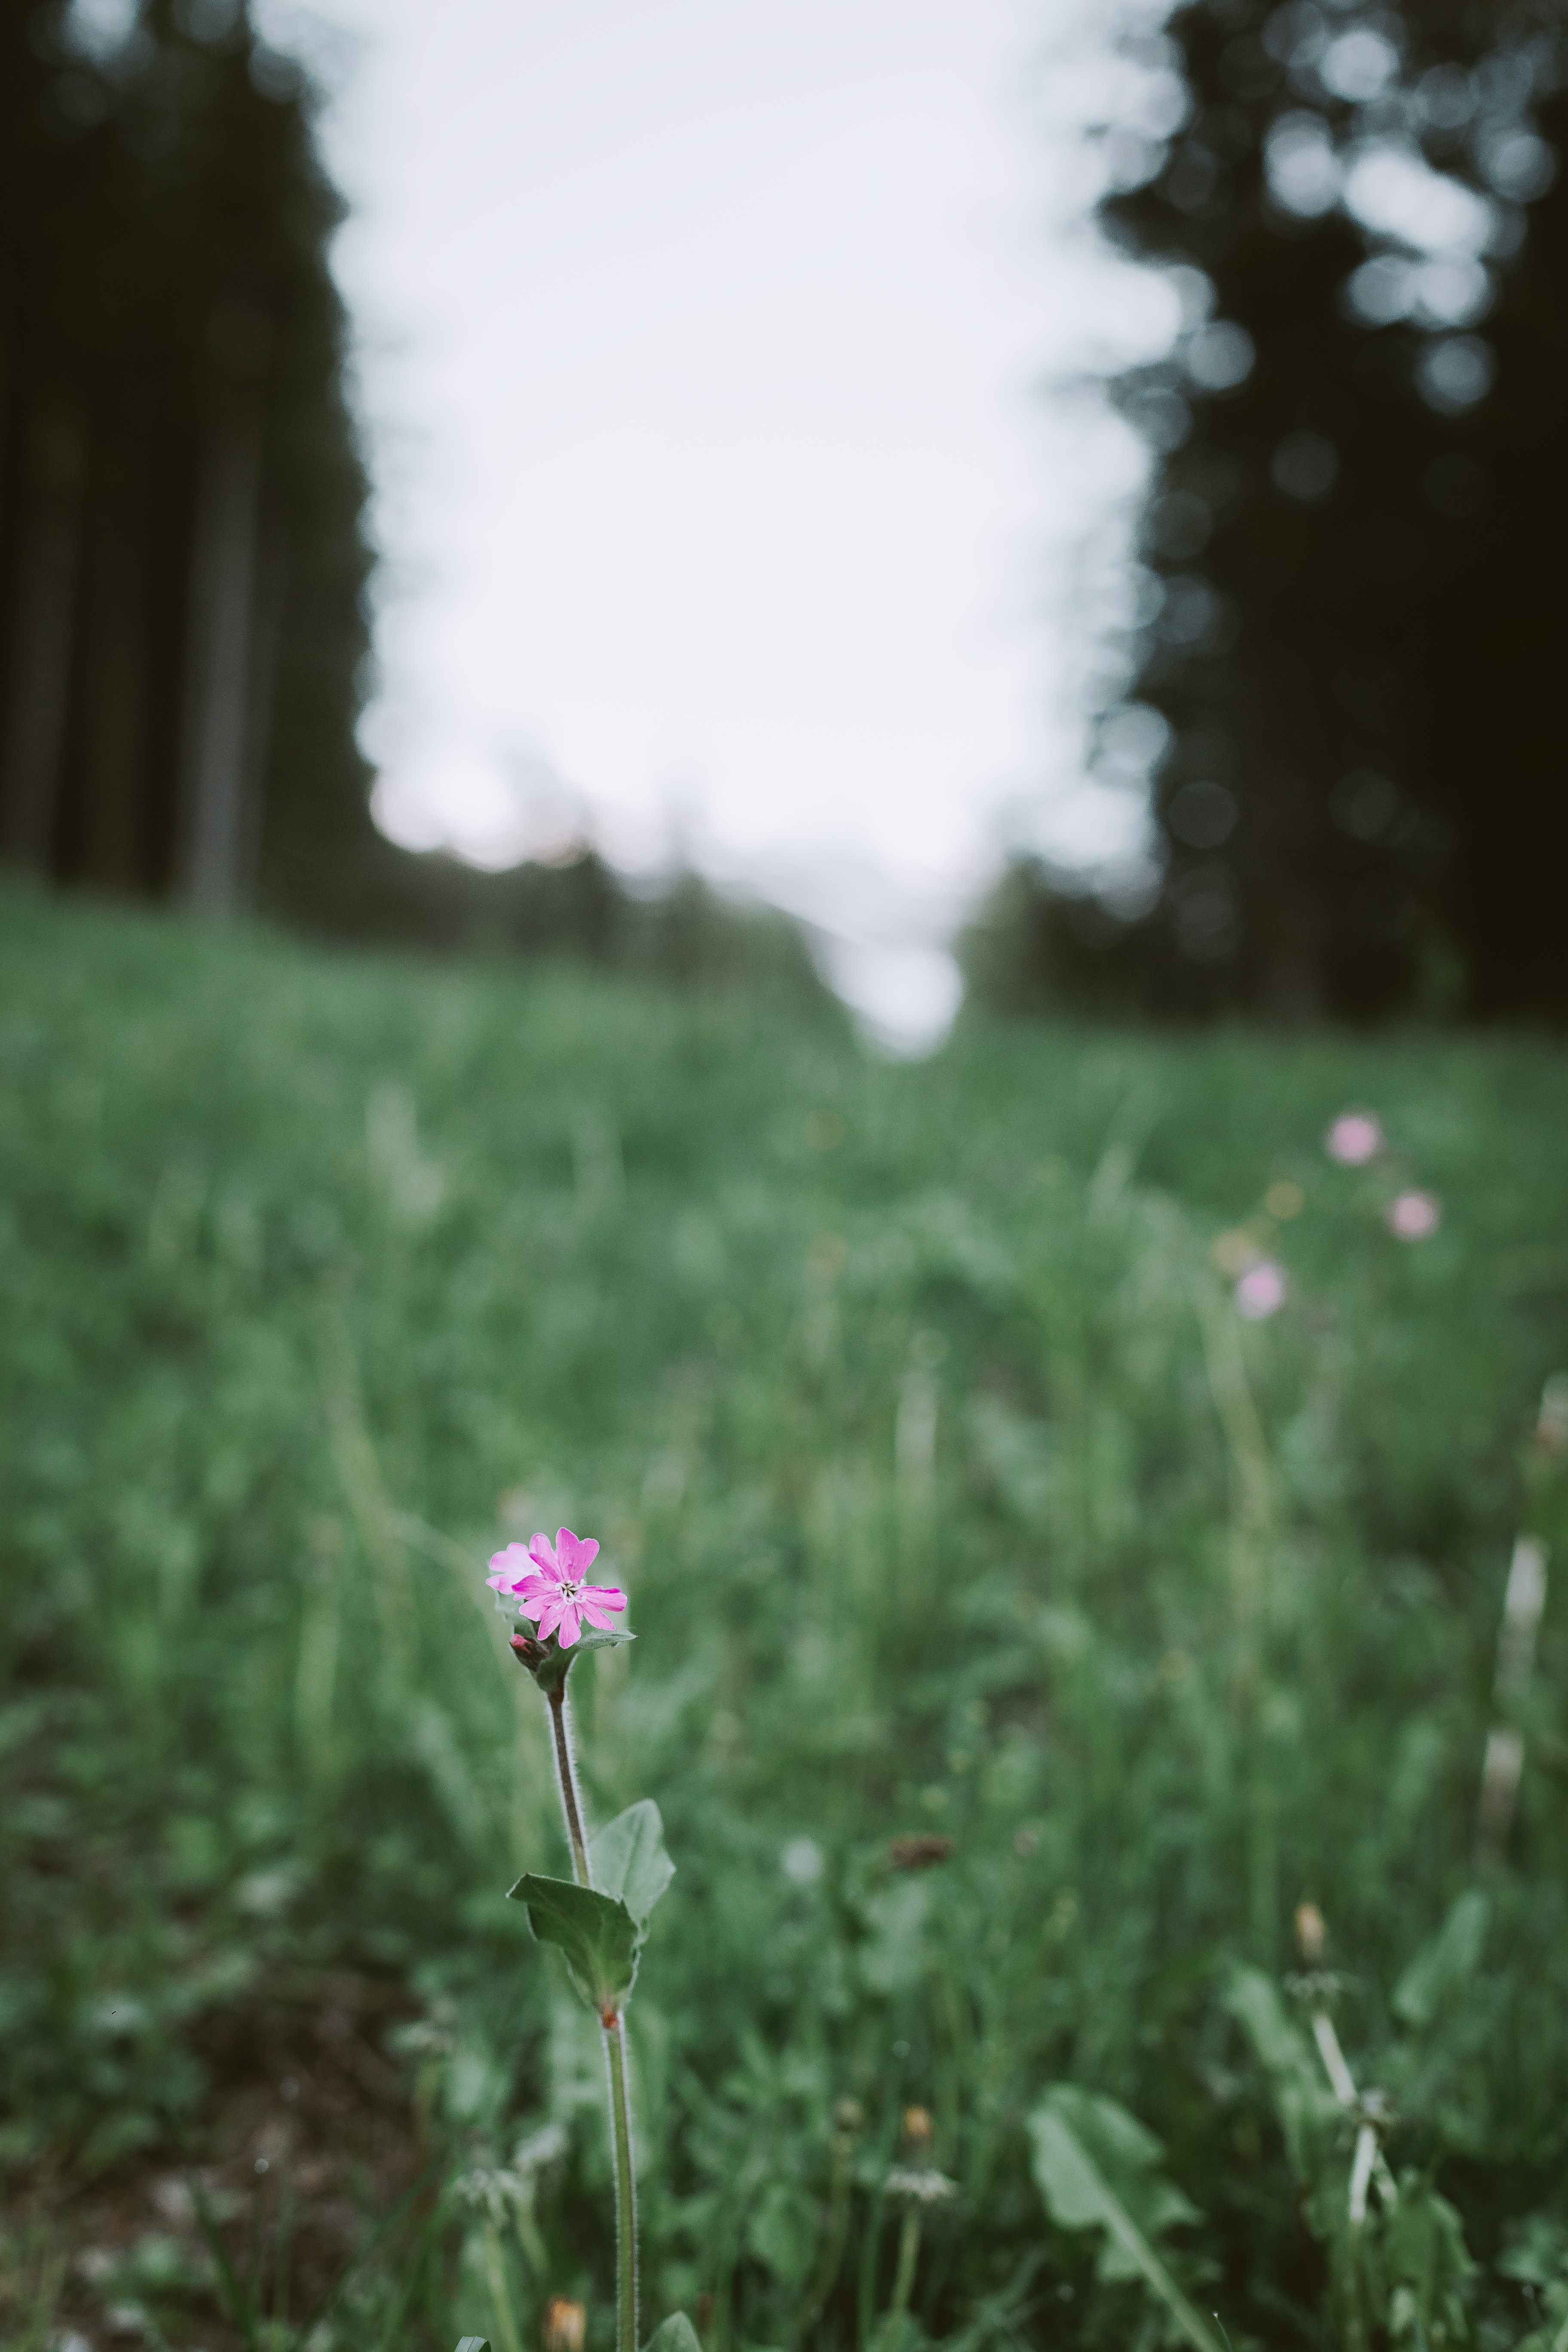 pink flower with green grass